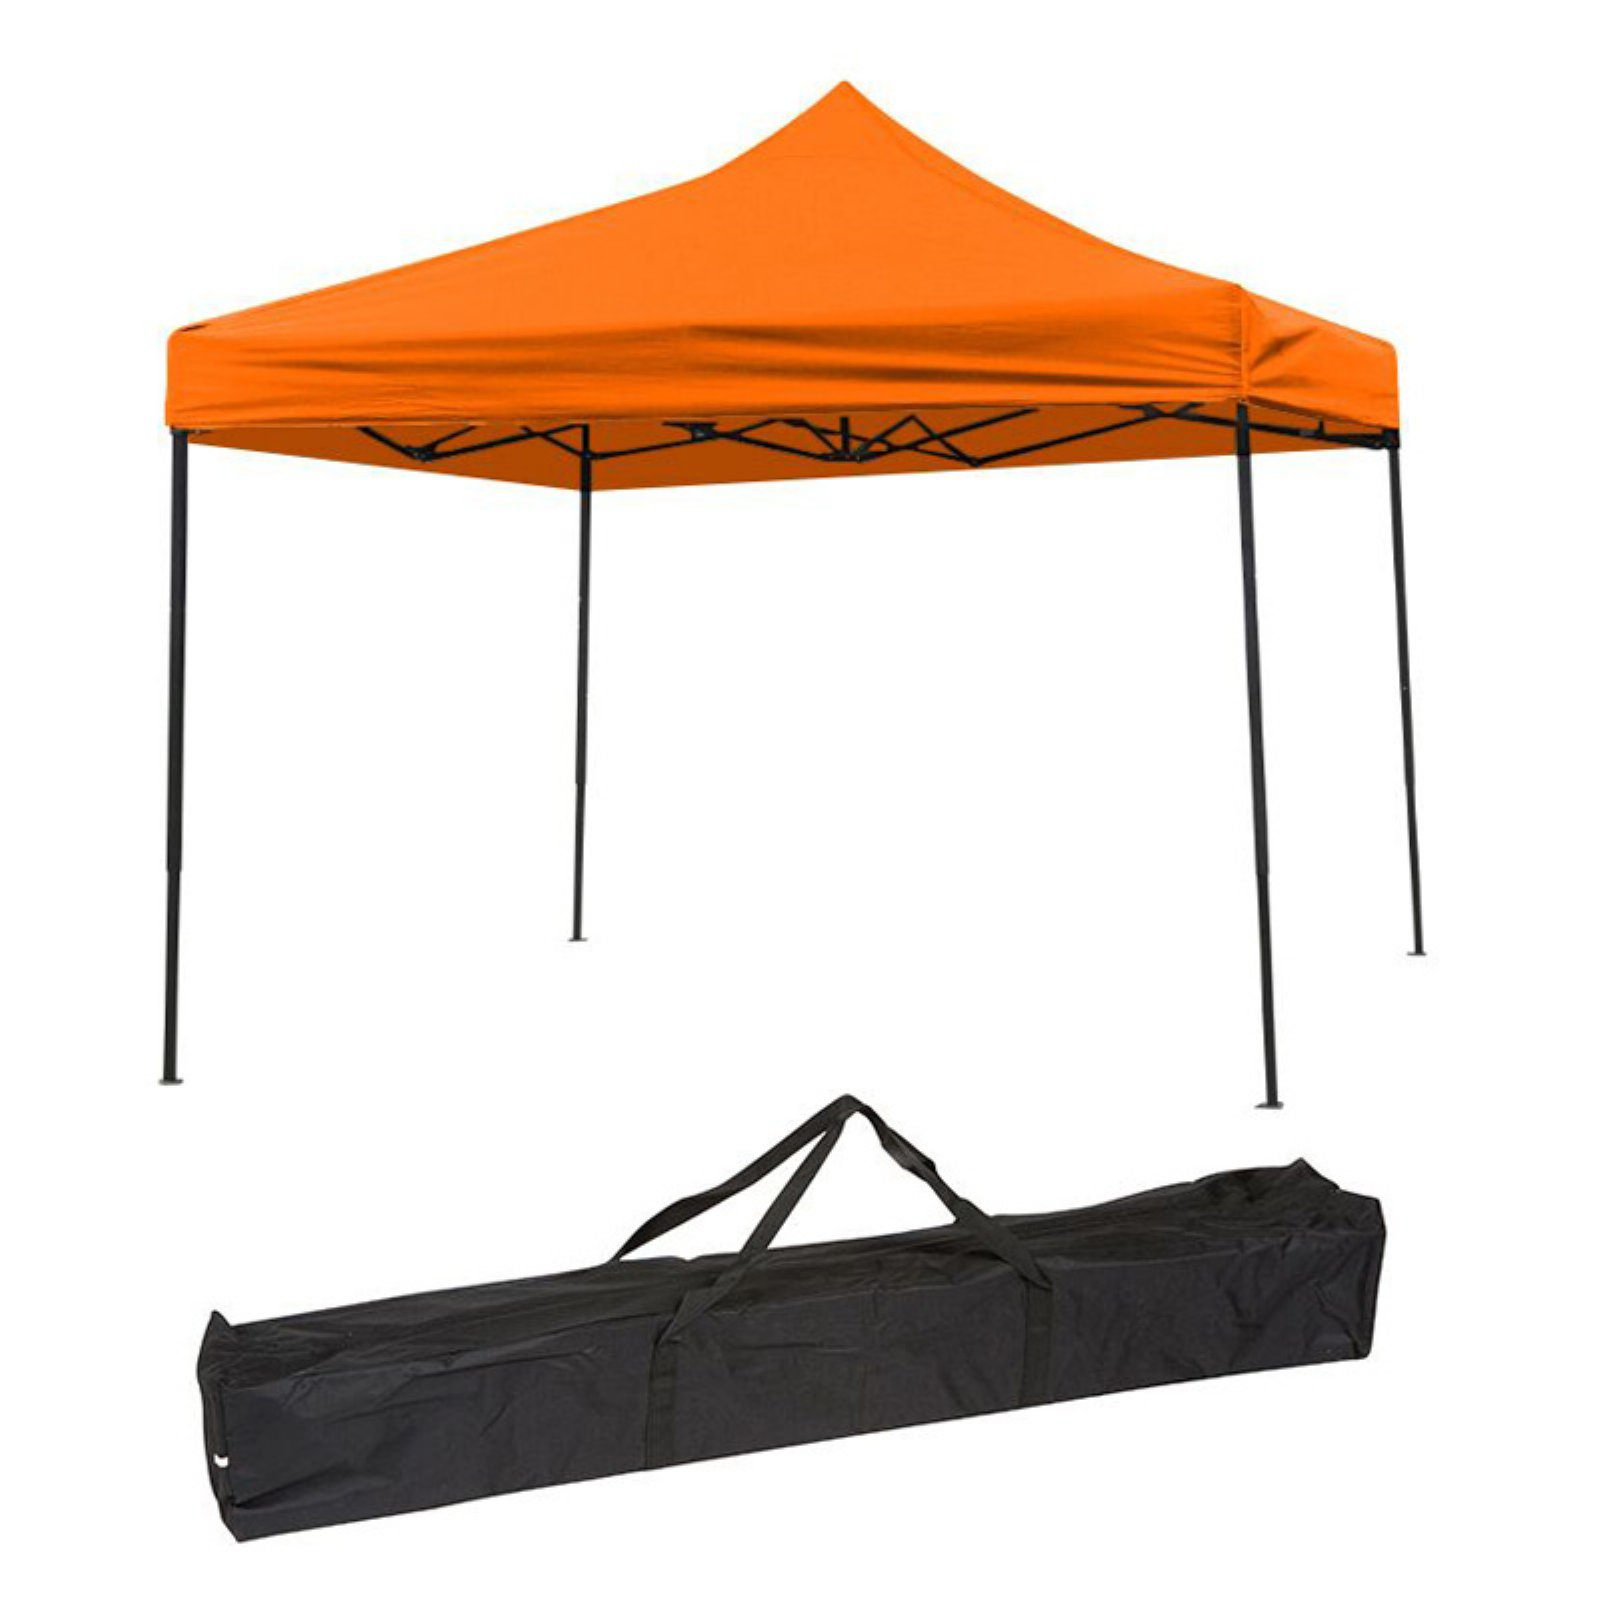 Lightweight & Portable Canopy Tent Set - 10' x 10' - By Trademark Innovations (Black Canopy Cover)